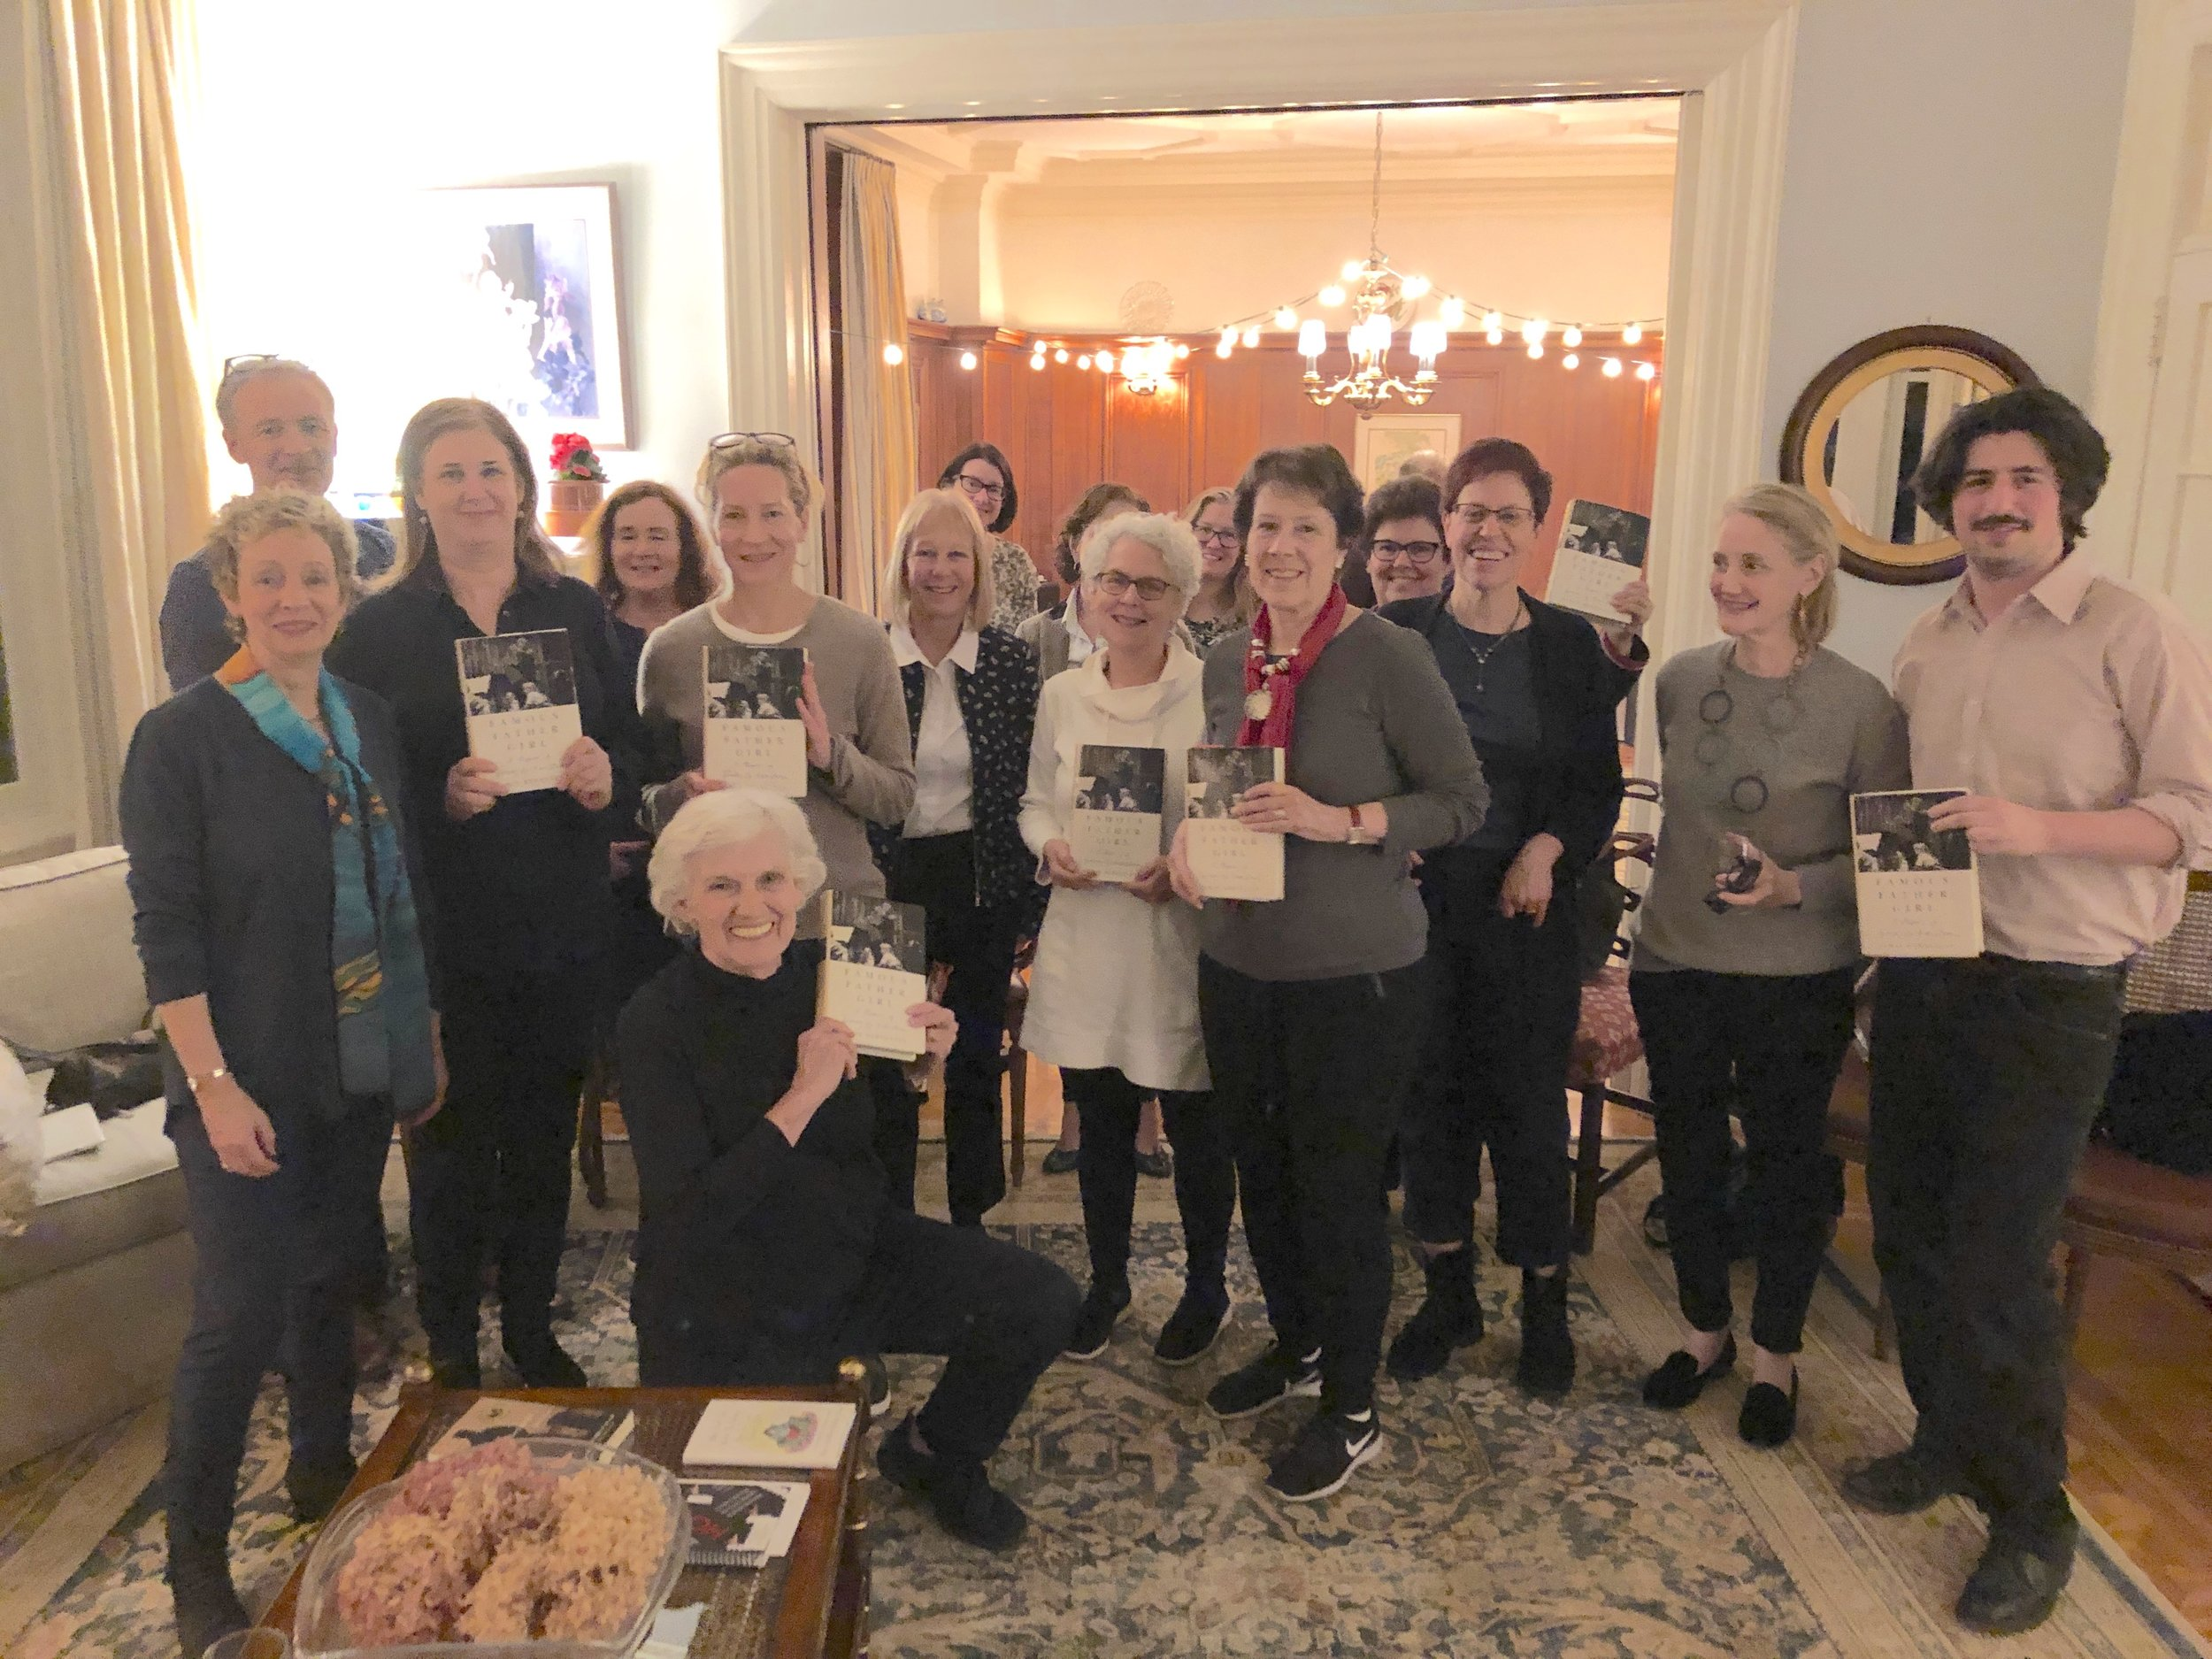 Memoirist Jamie Bernstein at her book group for FAMOUS FATHER GIRL